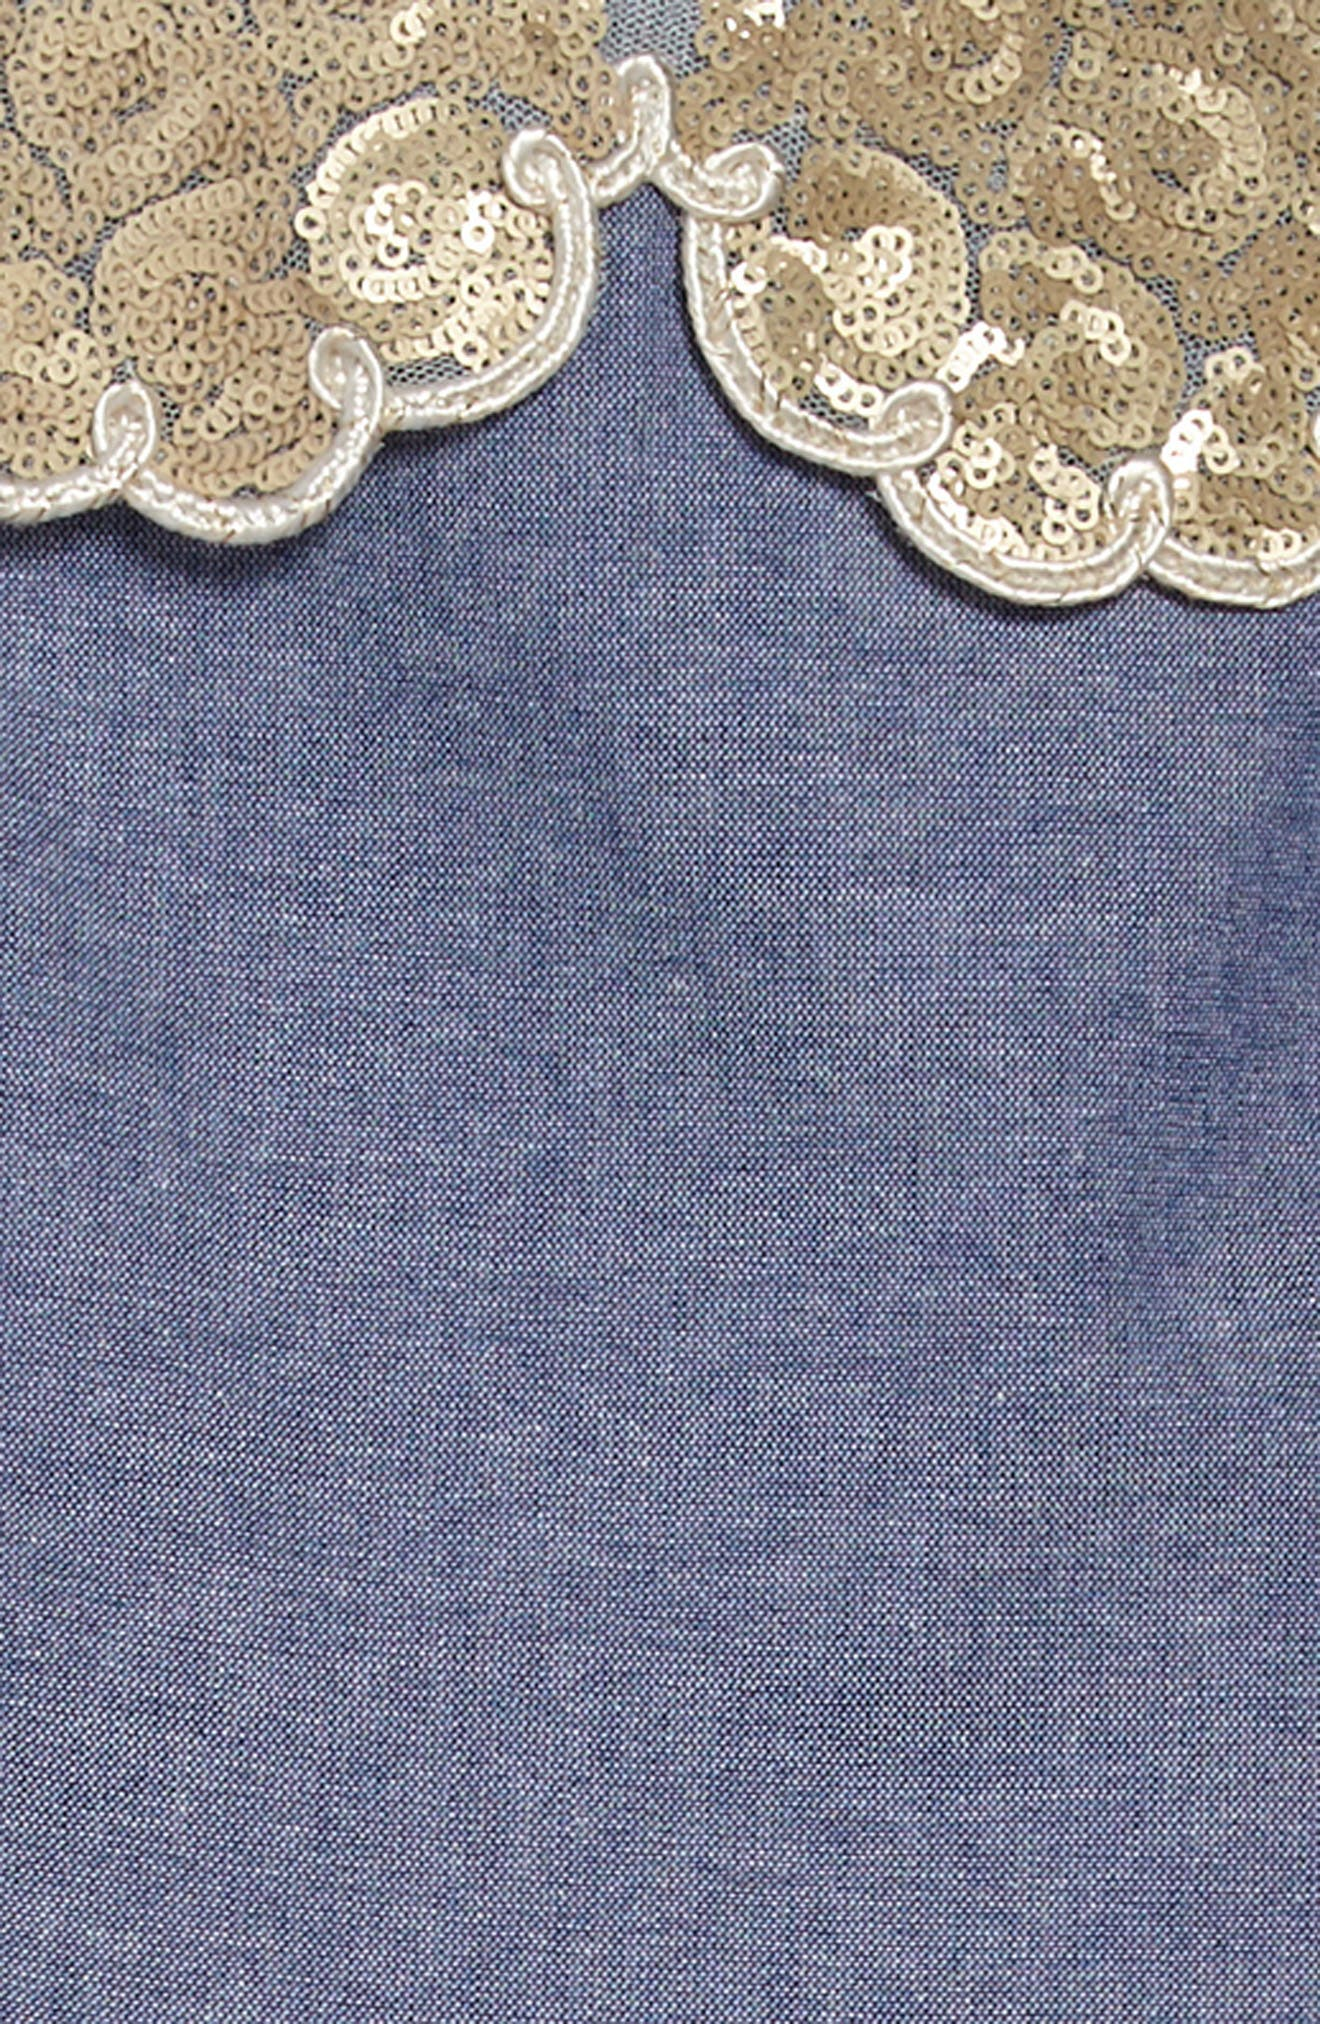 Darcy Chambray Dress,                             Alternate thumbnail 3, color,                             400